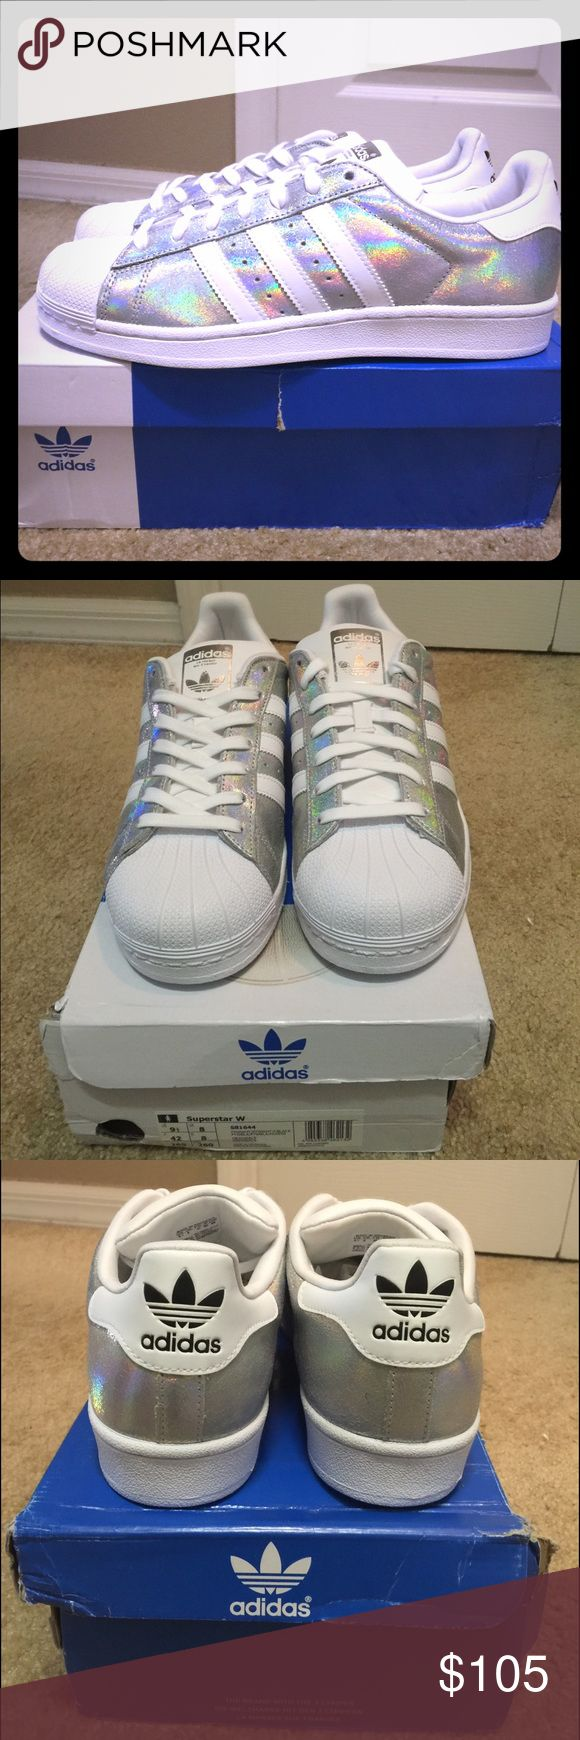 Adidas Hologram sneakers*limited edition* Brand new Adidas only exclusive to the UK. Very rare sneakers, cannot find them anywhere. Adidas Shoes Sneakers